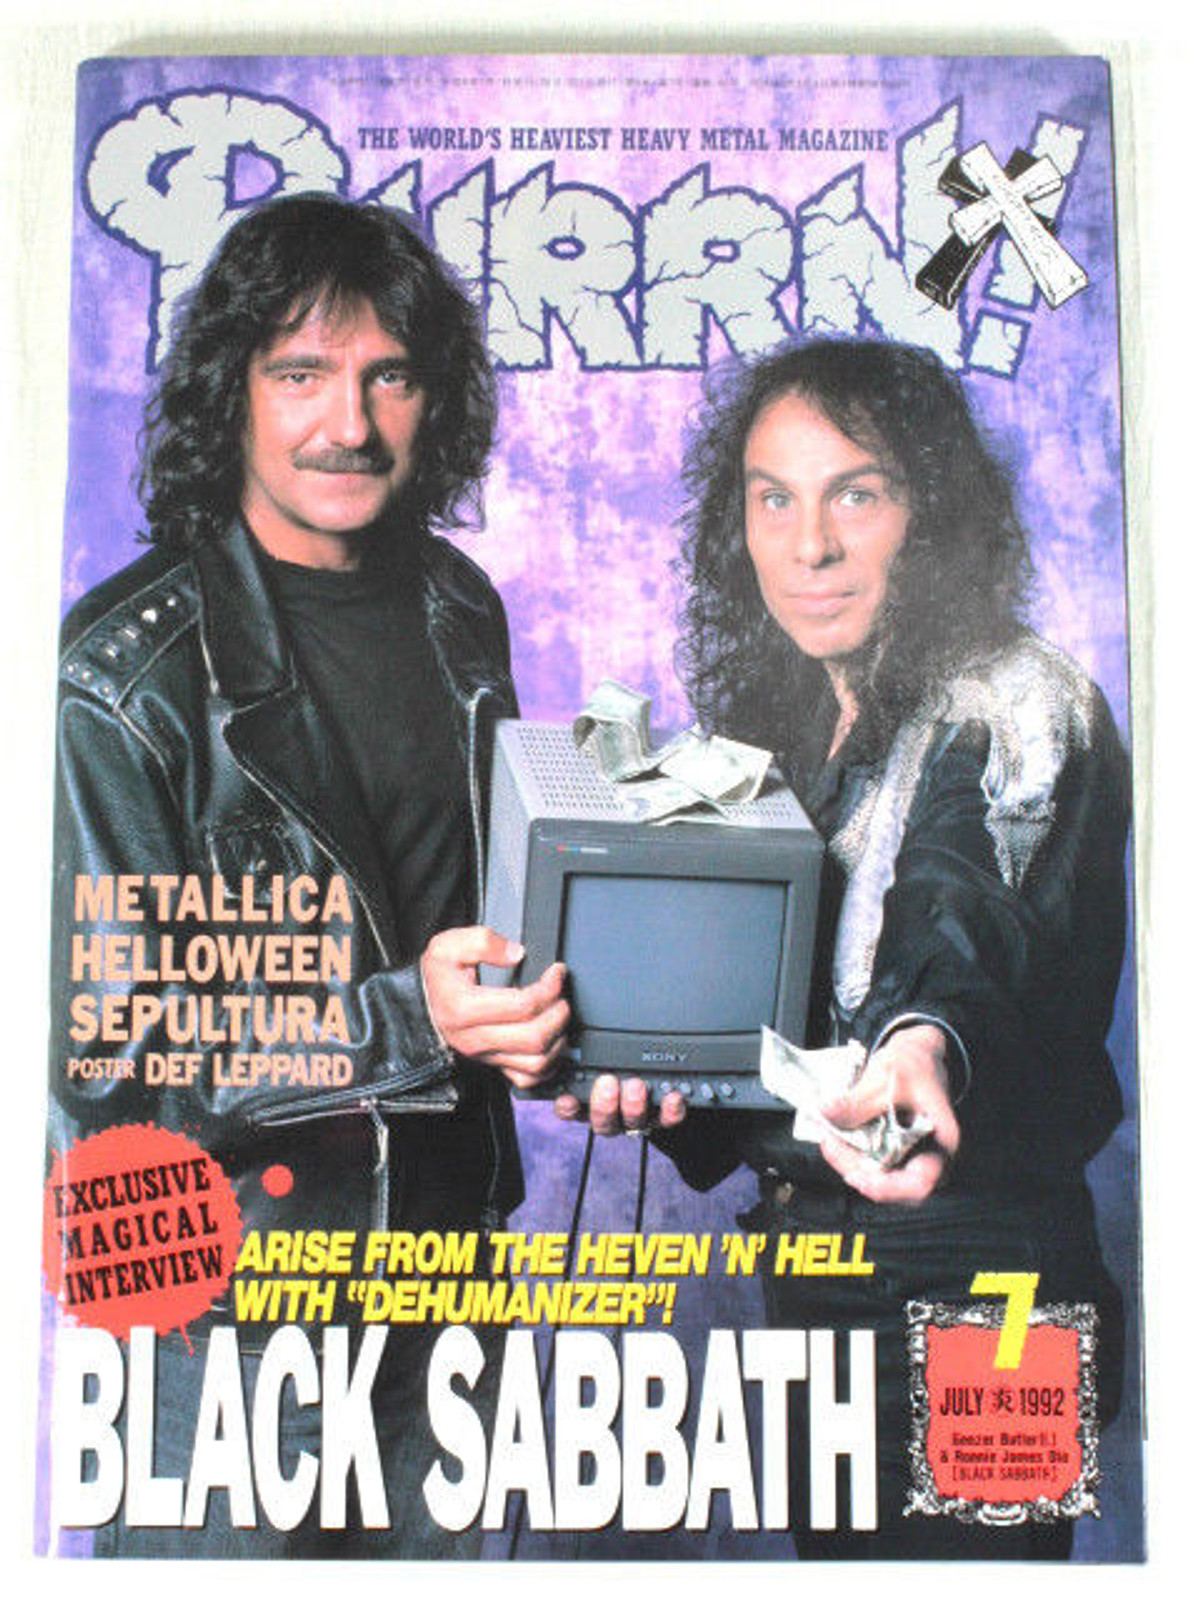 1992/07 BURRN! Japan Rock Magazine BLACK SABBATH METALLICA/SEPULTULA/EXTREME